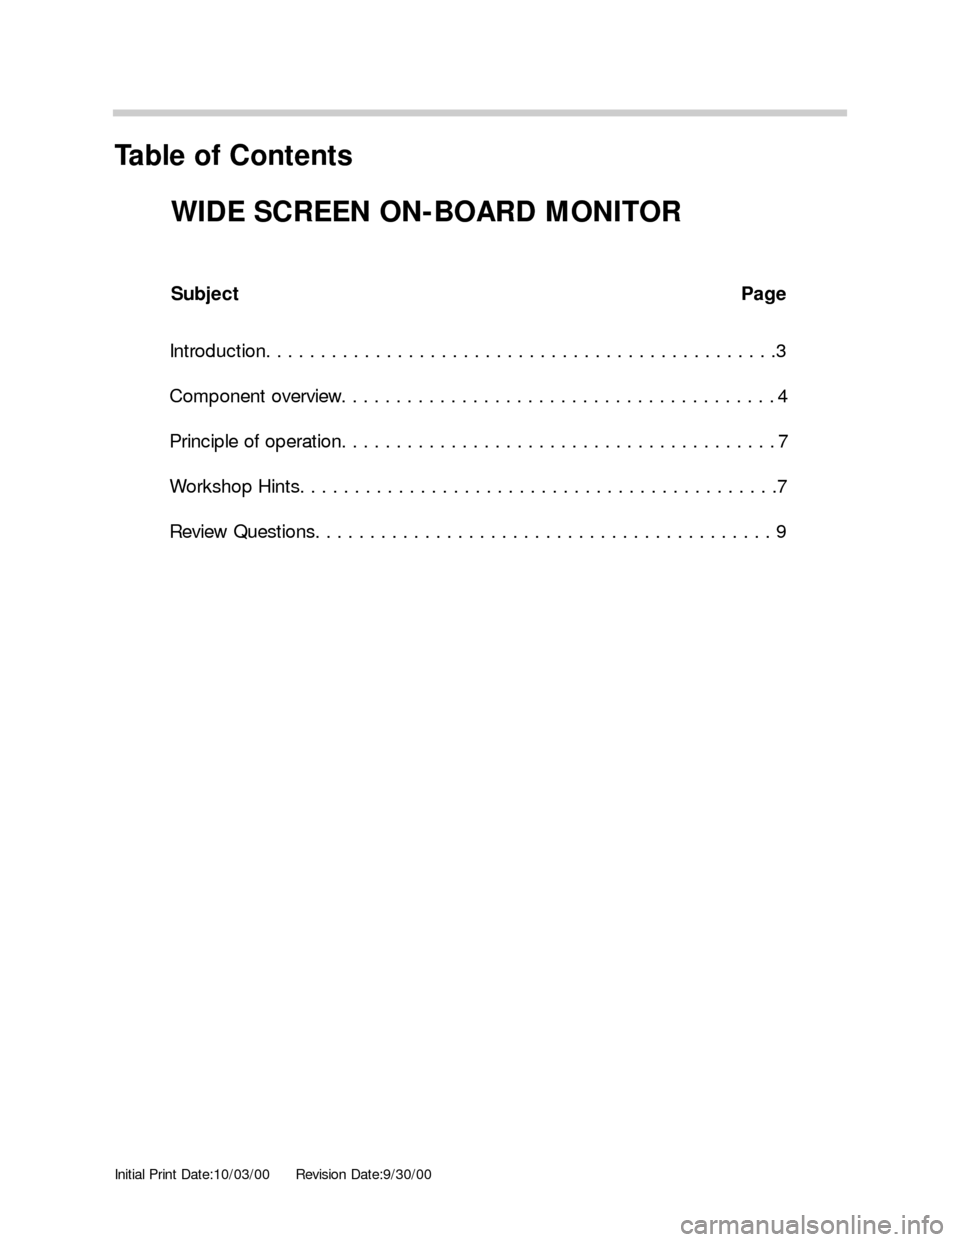 BMW 5 SERIES 2001 E39 Wide Screen On Board Monitor Workshop Manual, Page 1